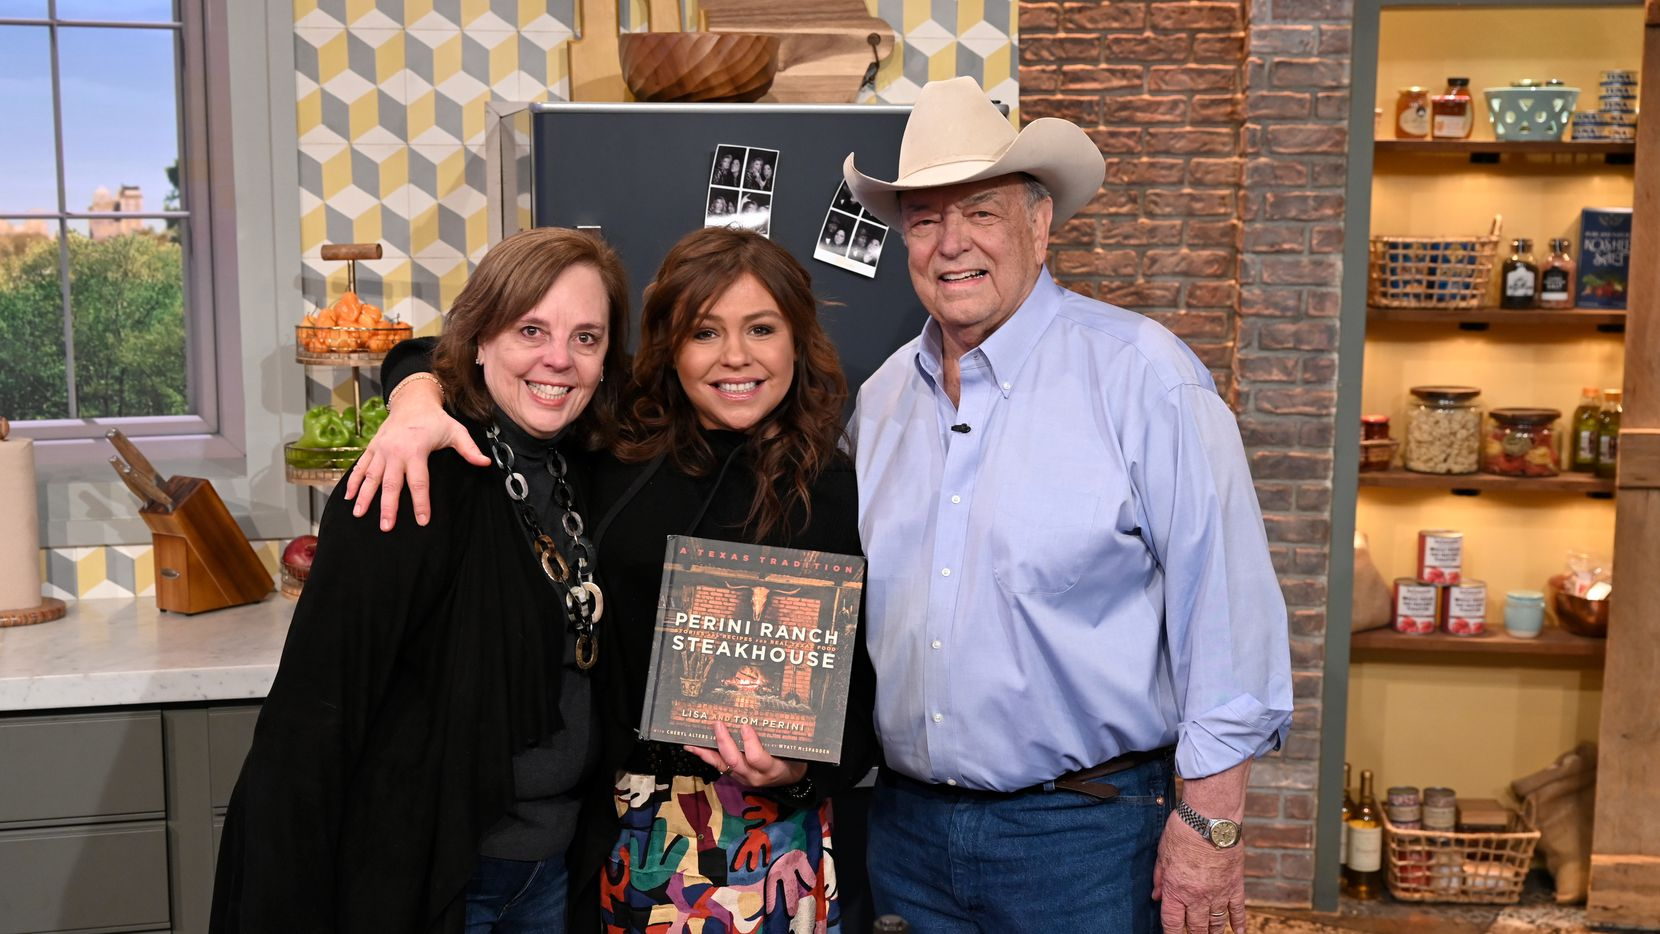 Tom Perini joined Rachael Ray (center) for a cooking demo on her show 'Rachael Ray.' Tom Perini and Lisa Perini (left) co-own beloved restaurant Perini Ranch Steakhouse in Buffalo Gap, Texas.